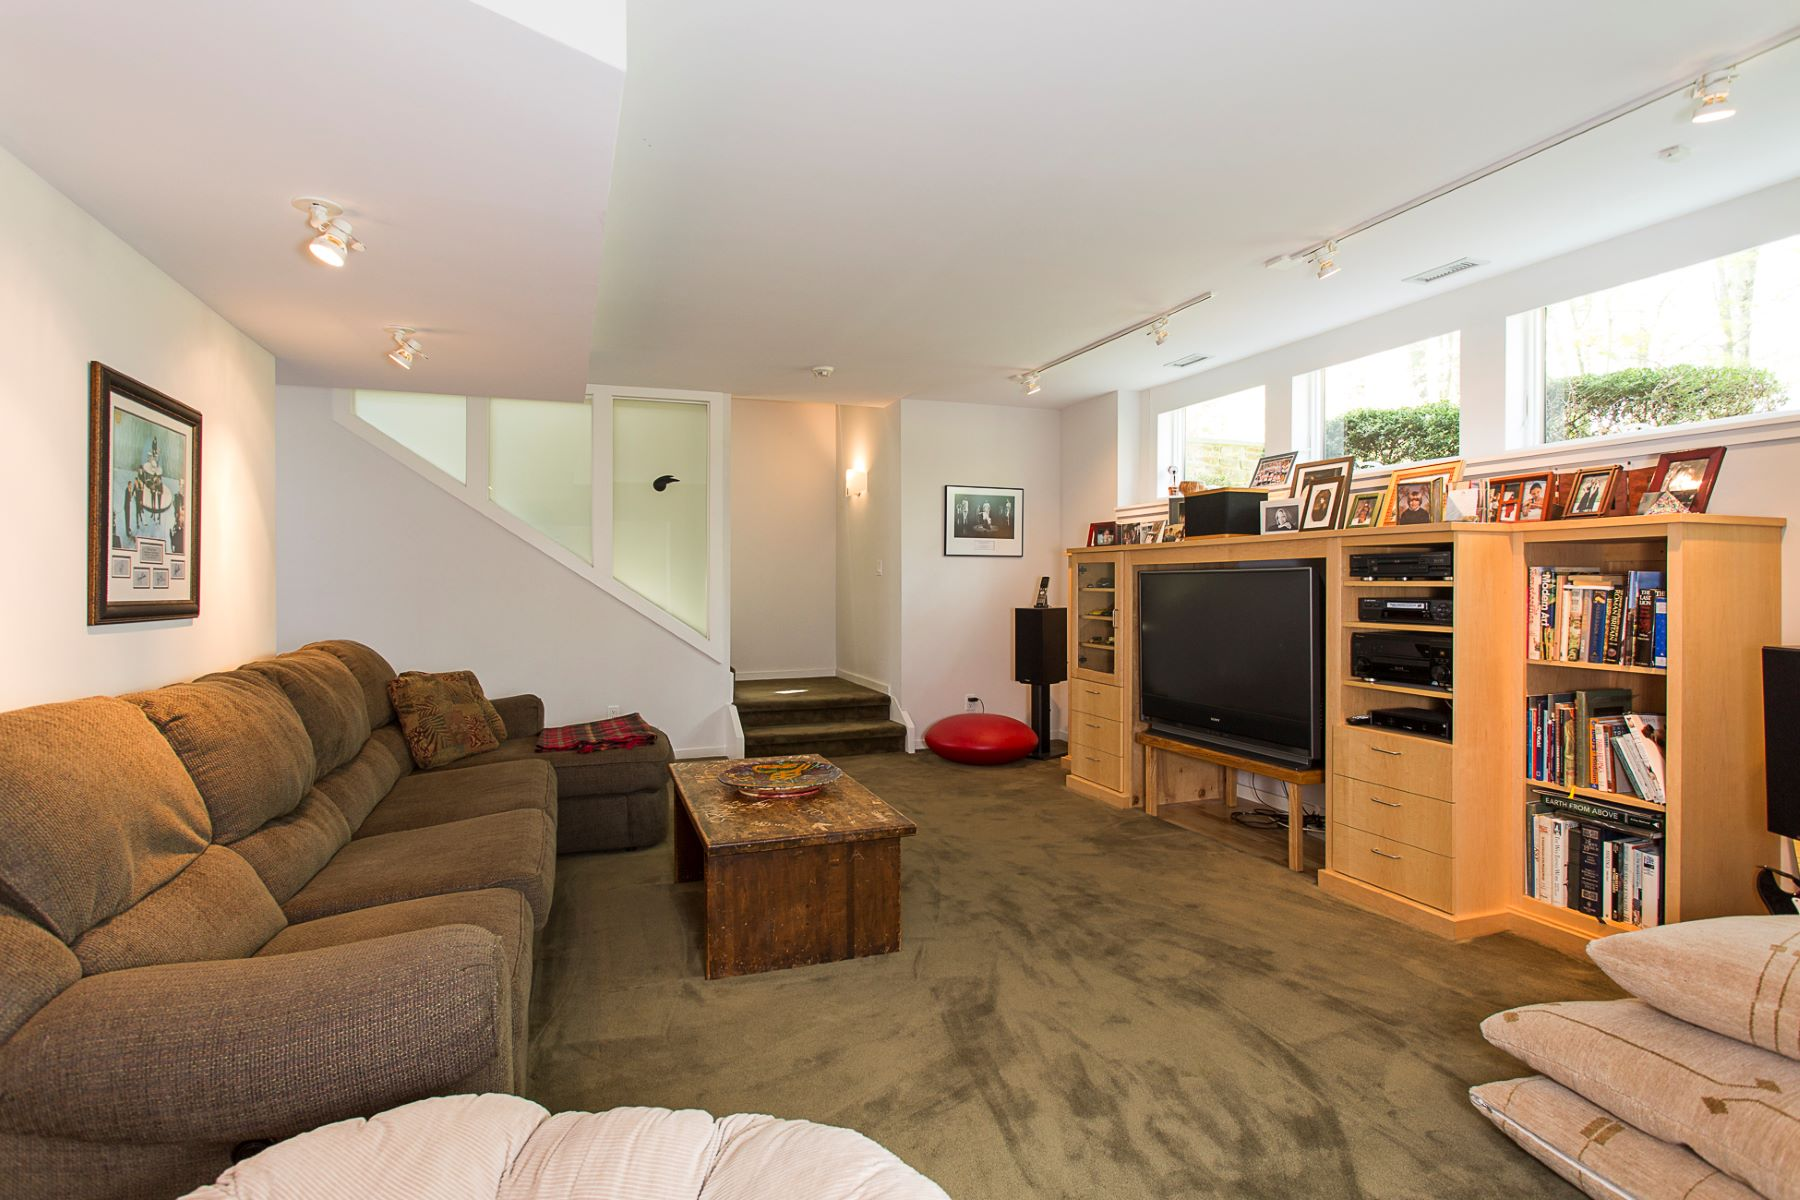 Additional photo for property listing at Low Impact Environmental Design, High Impact Style 190 Woosamonsa Road, Pennington, New Jersey 08534 United States